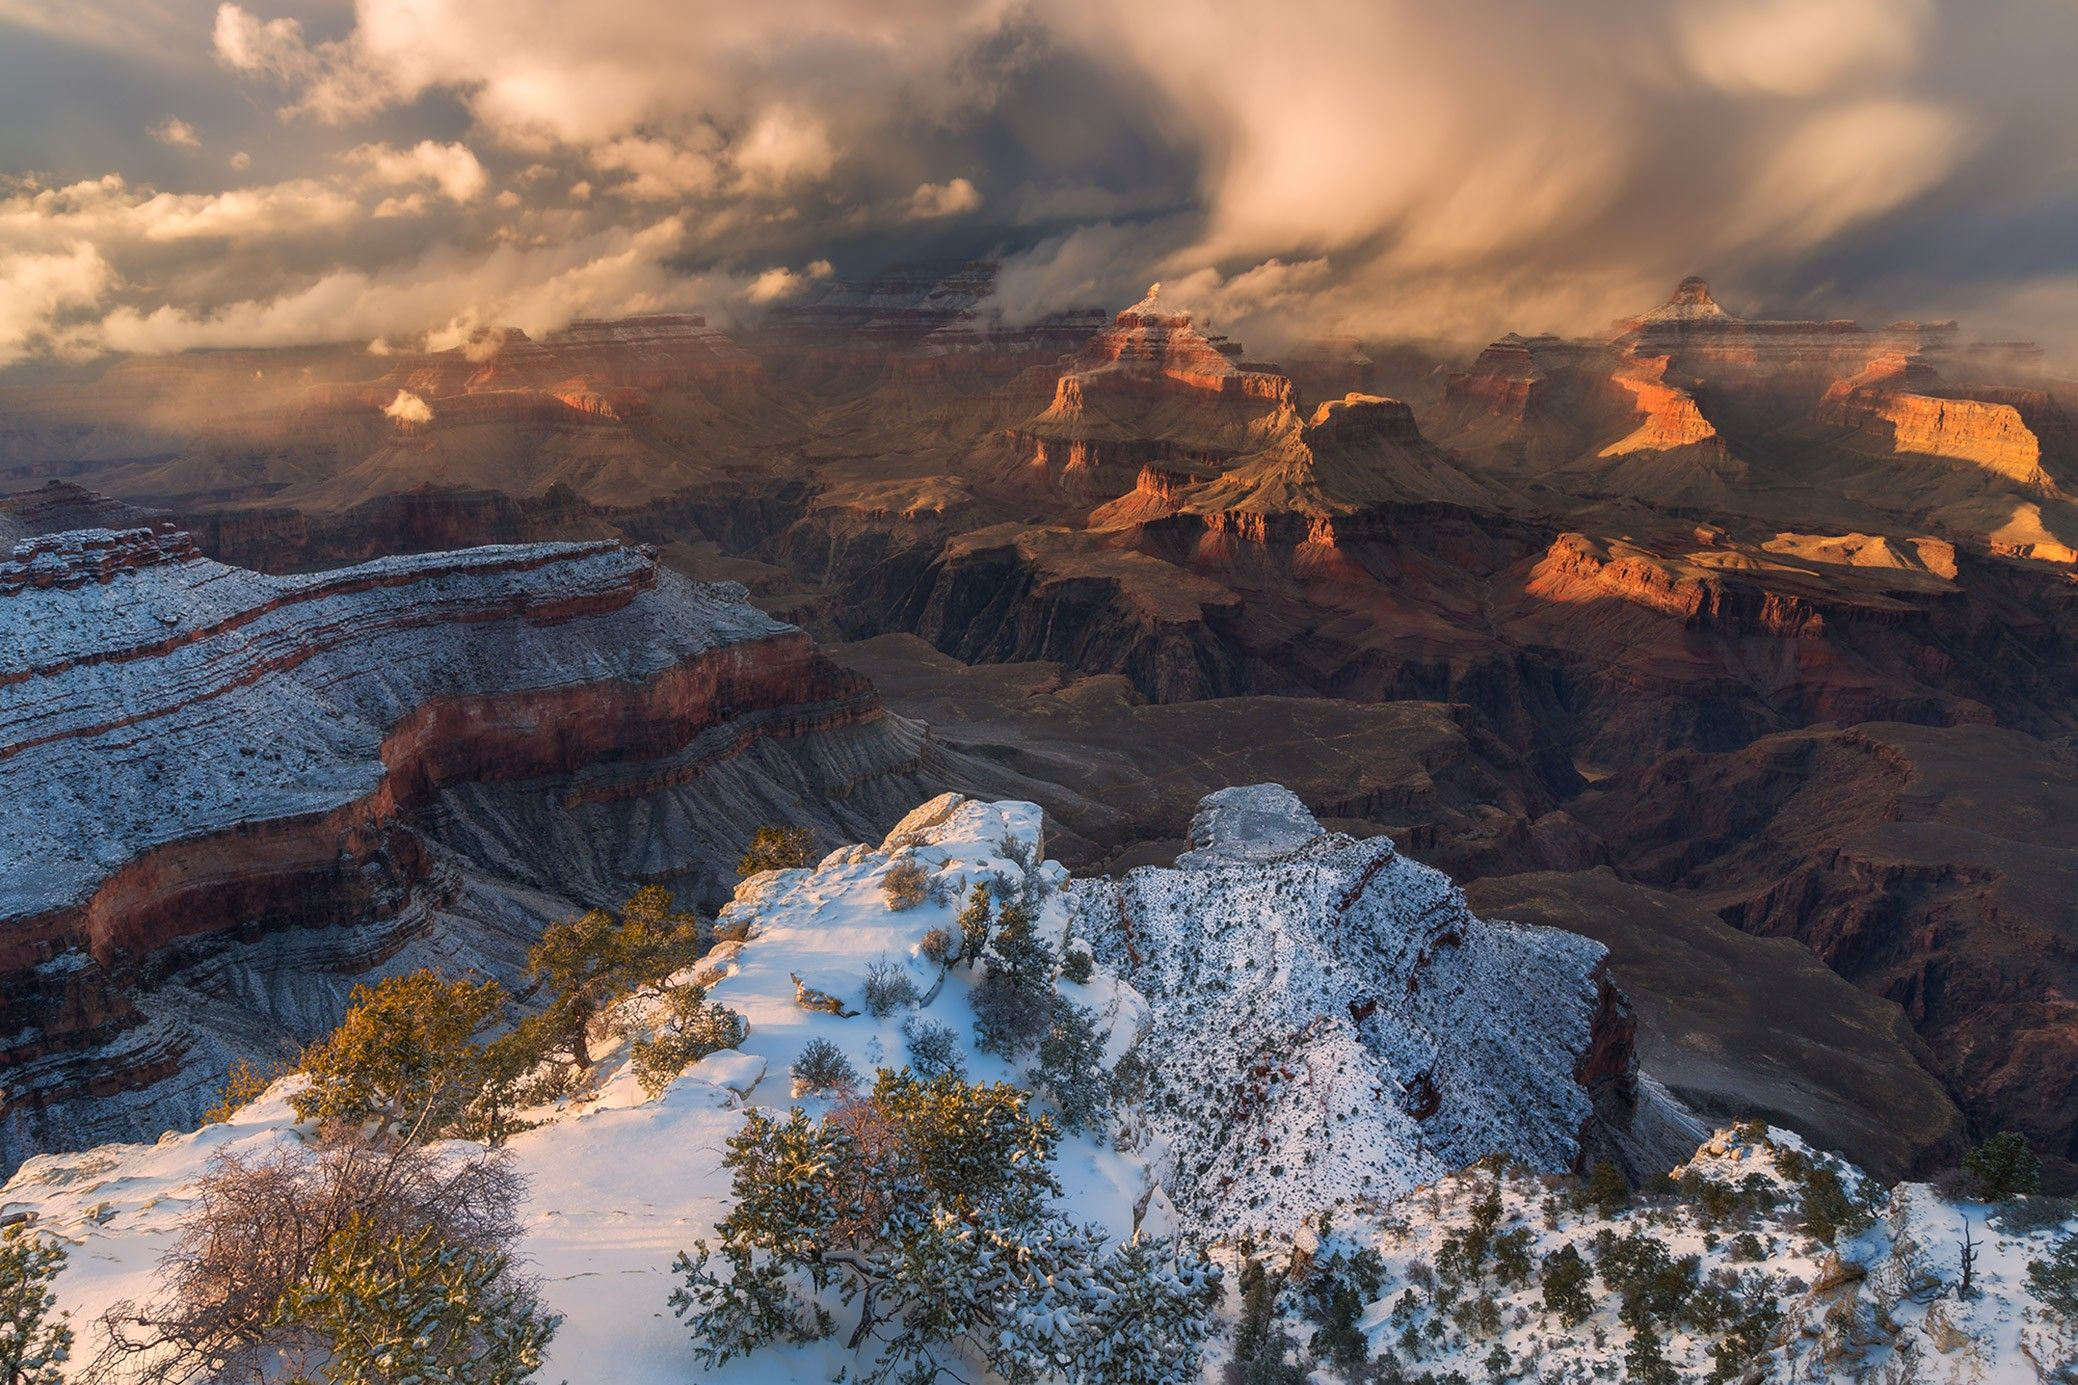 Le Grand Canyon en images | National Geographic